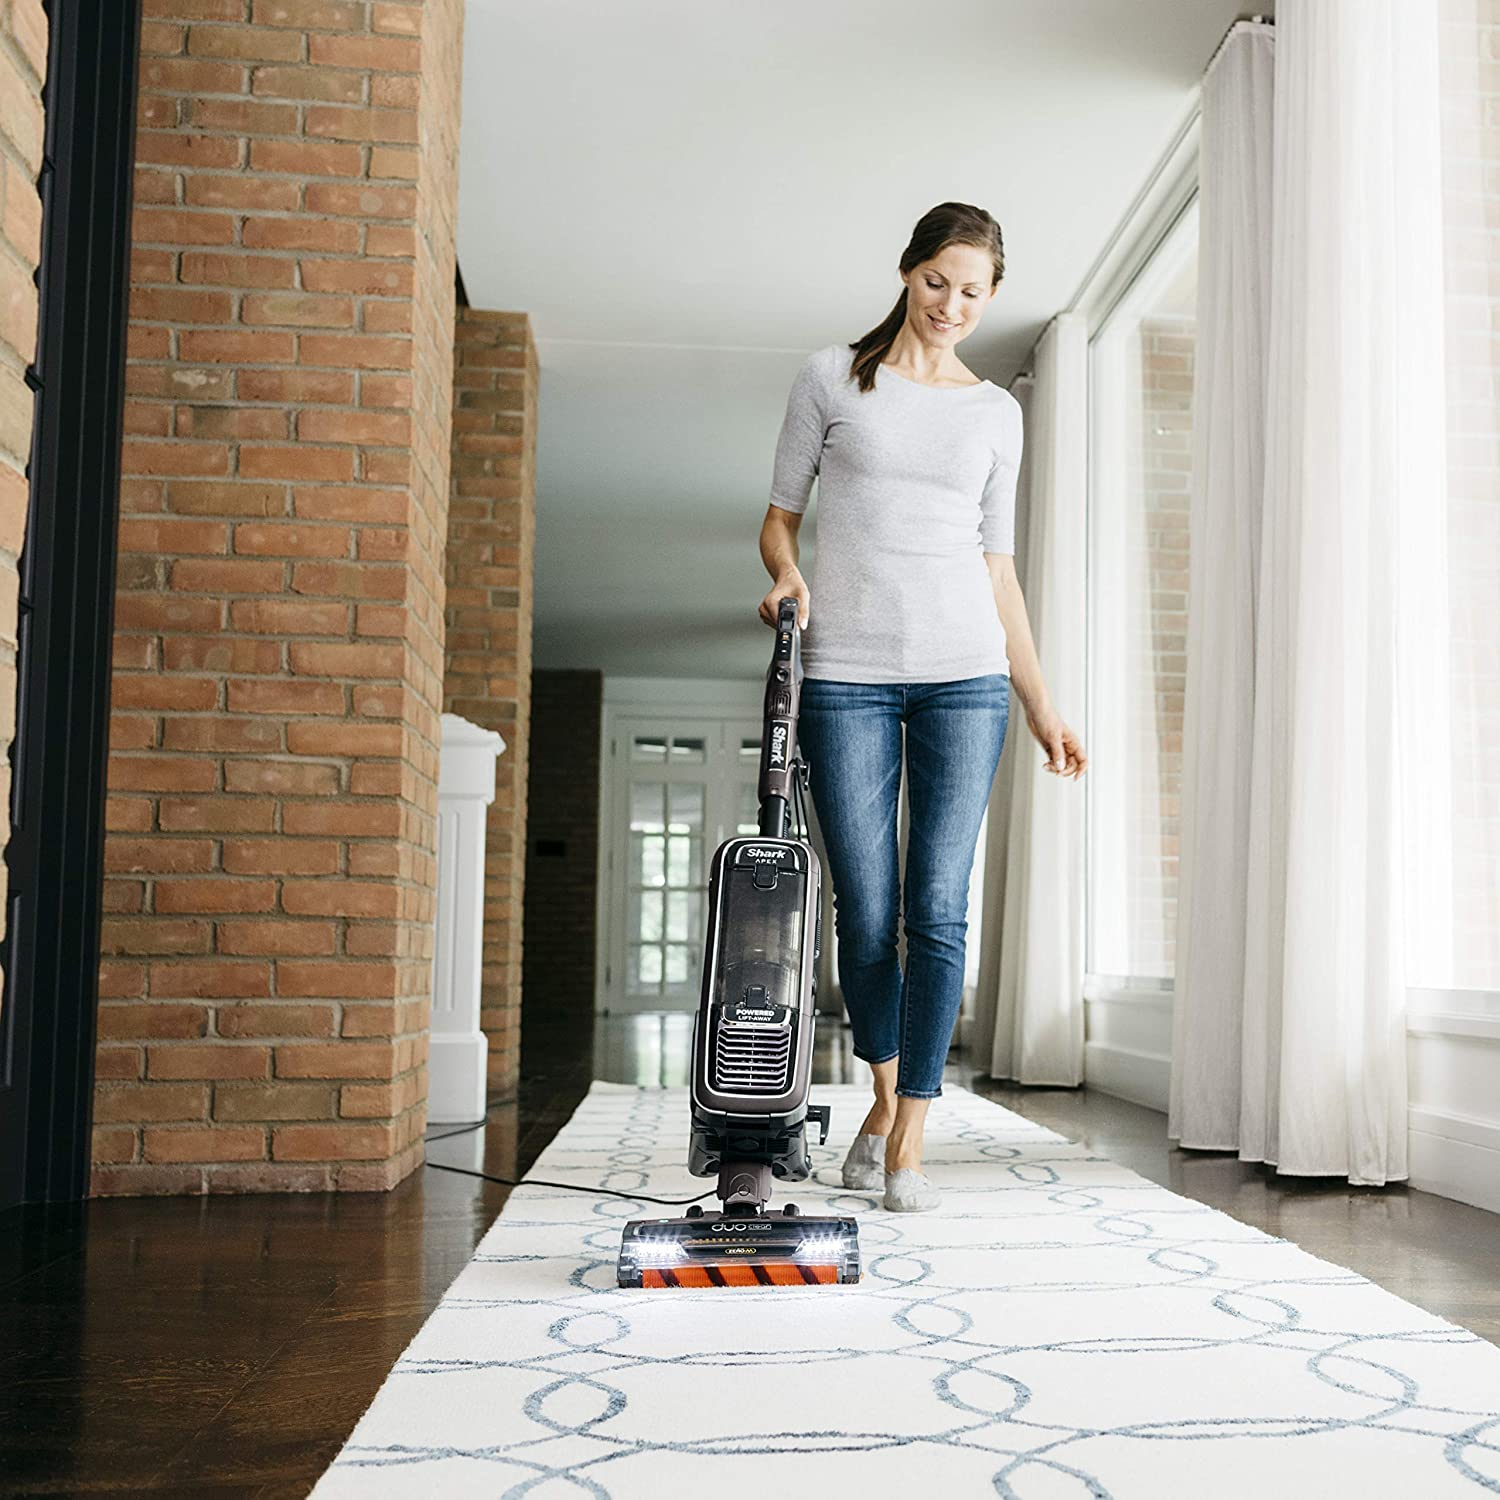 Renewed Espresso Zero-M Anti-Hair Wrap Shark APEX Upright Vacuum with DuoClean for Carpet and HardFloor Cleaning Powered Lift-Away with Hand Vacuum AZ1002